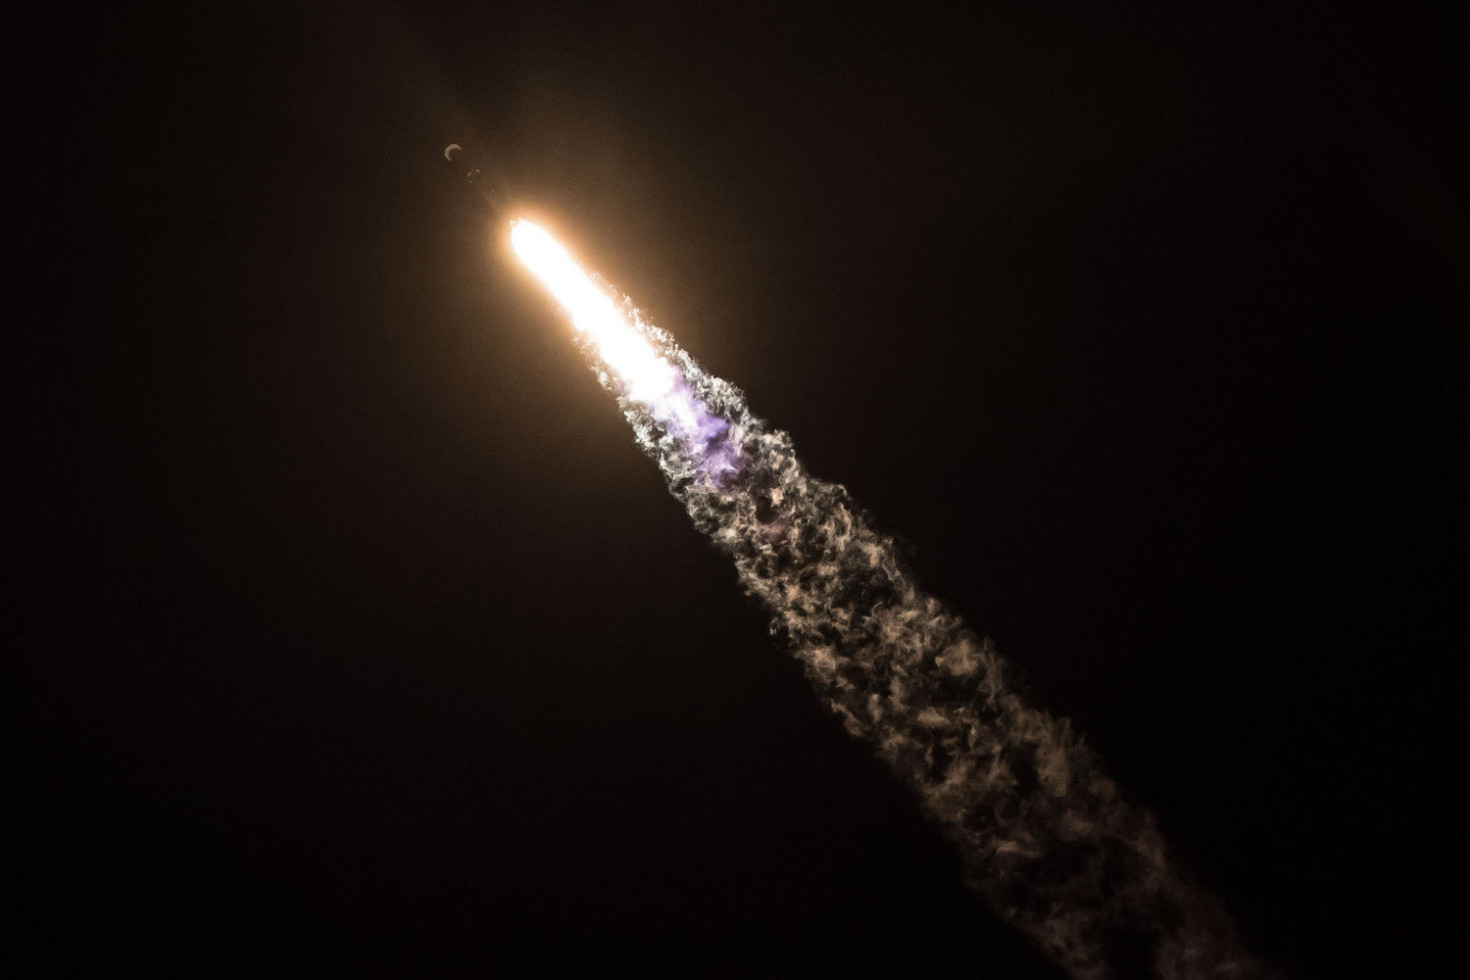 SpaceX Says Falcon 9 Rocket Performed as Expected During Zuma Launch